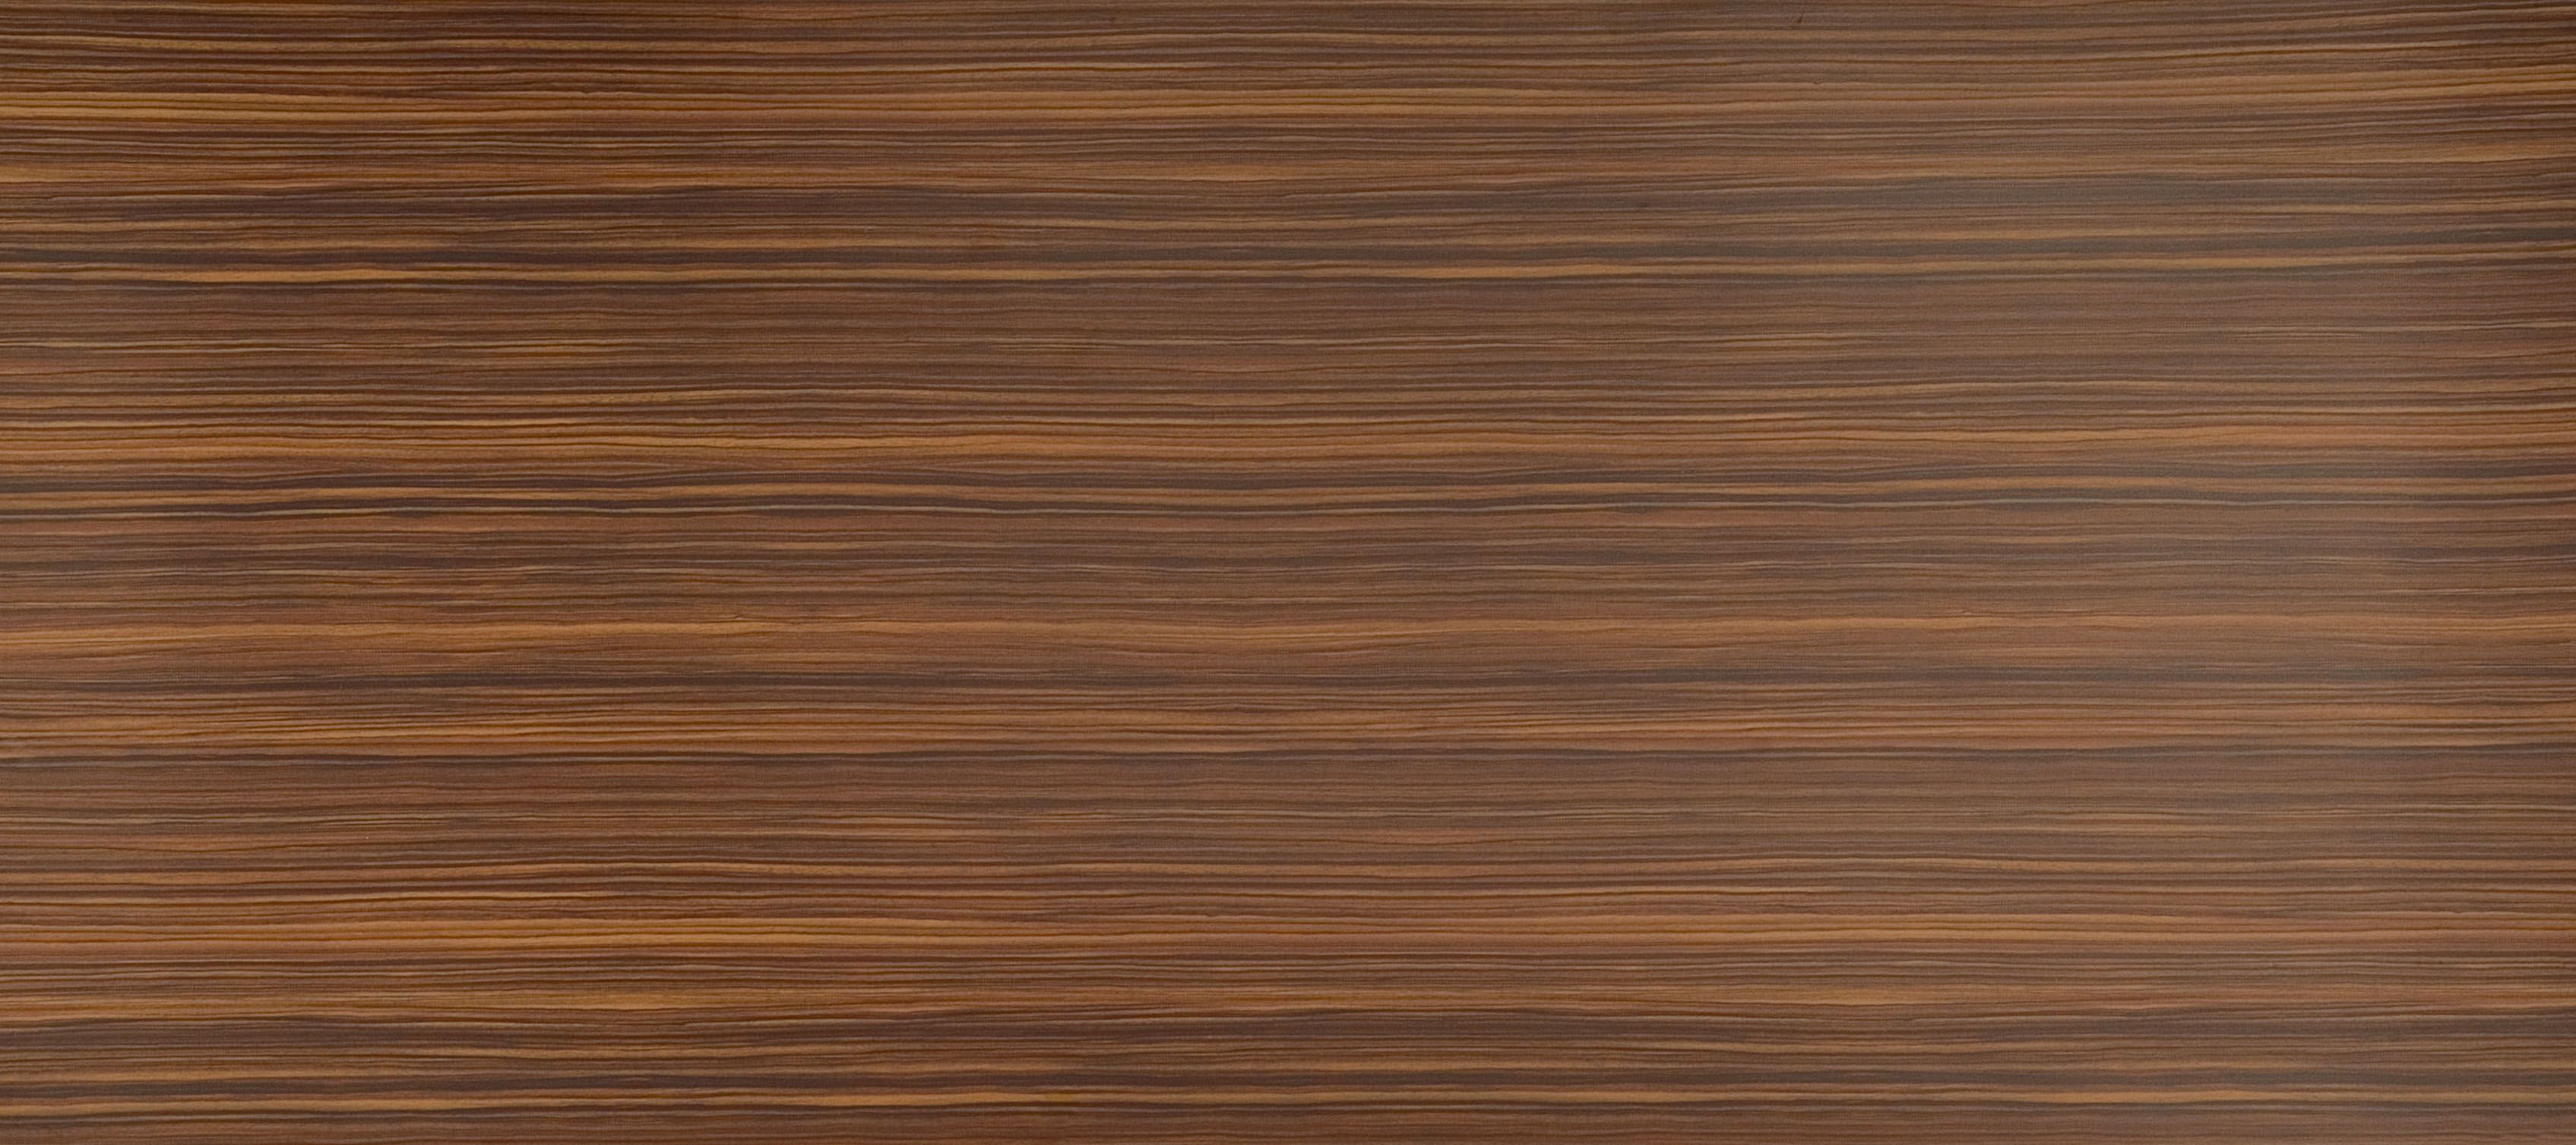 texture wood, free download, photo, download wood texture